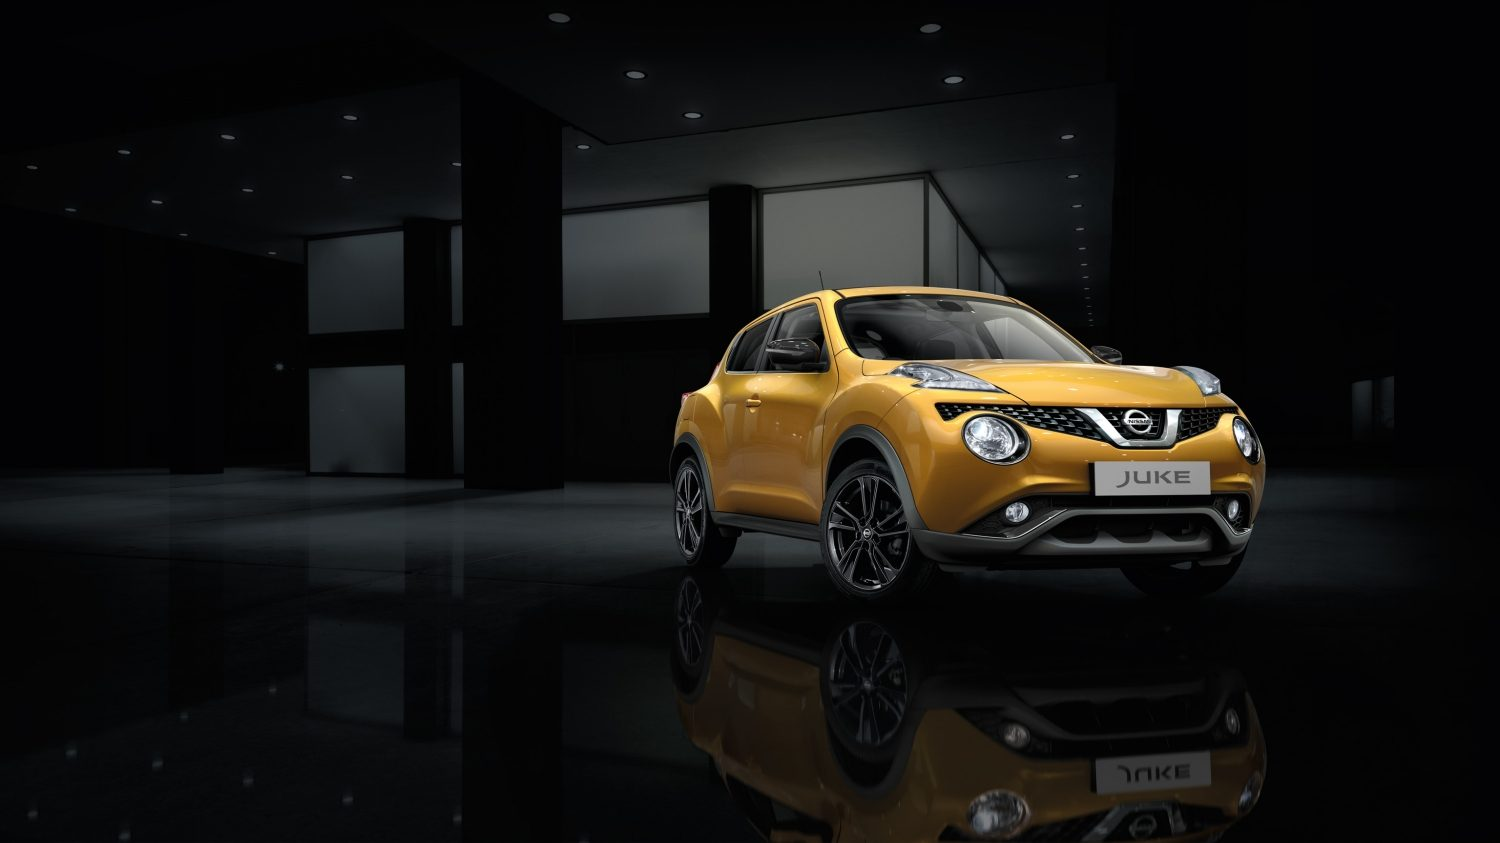 Compact & mini SUV design - yellow 3/4 front view | Nissan Juke